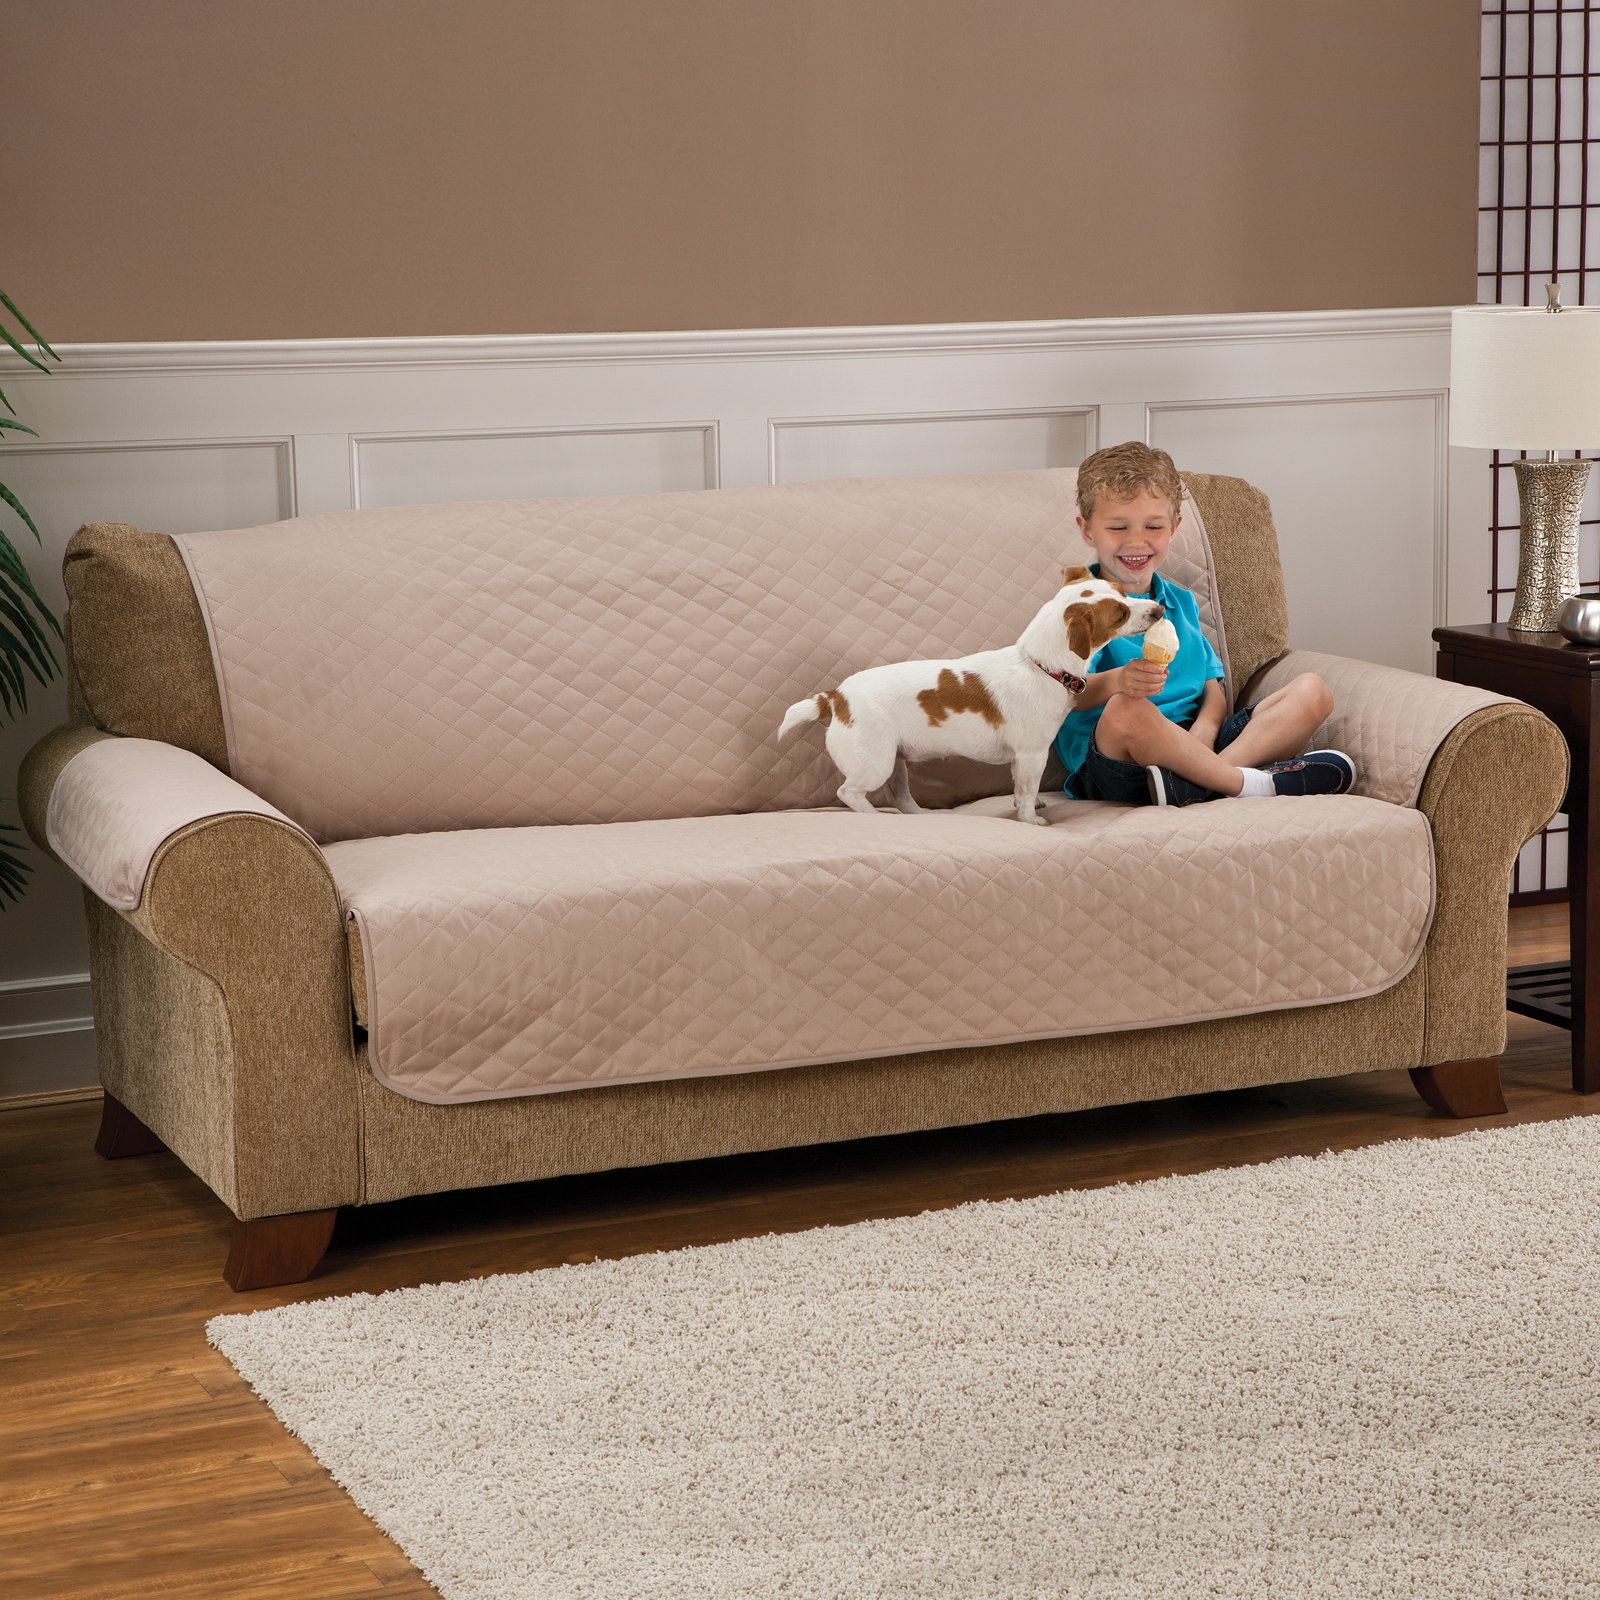 sofa protectors for pets bernhardt london club price pet protector deluxe armless furniture cover